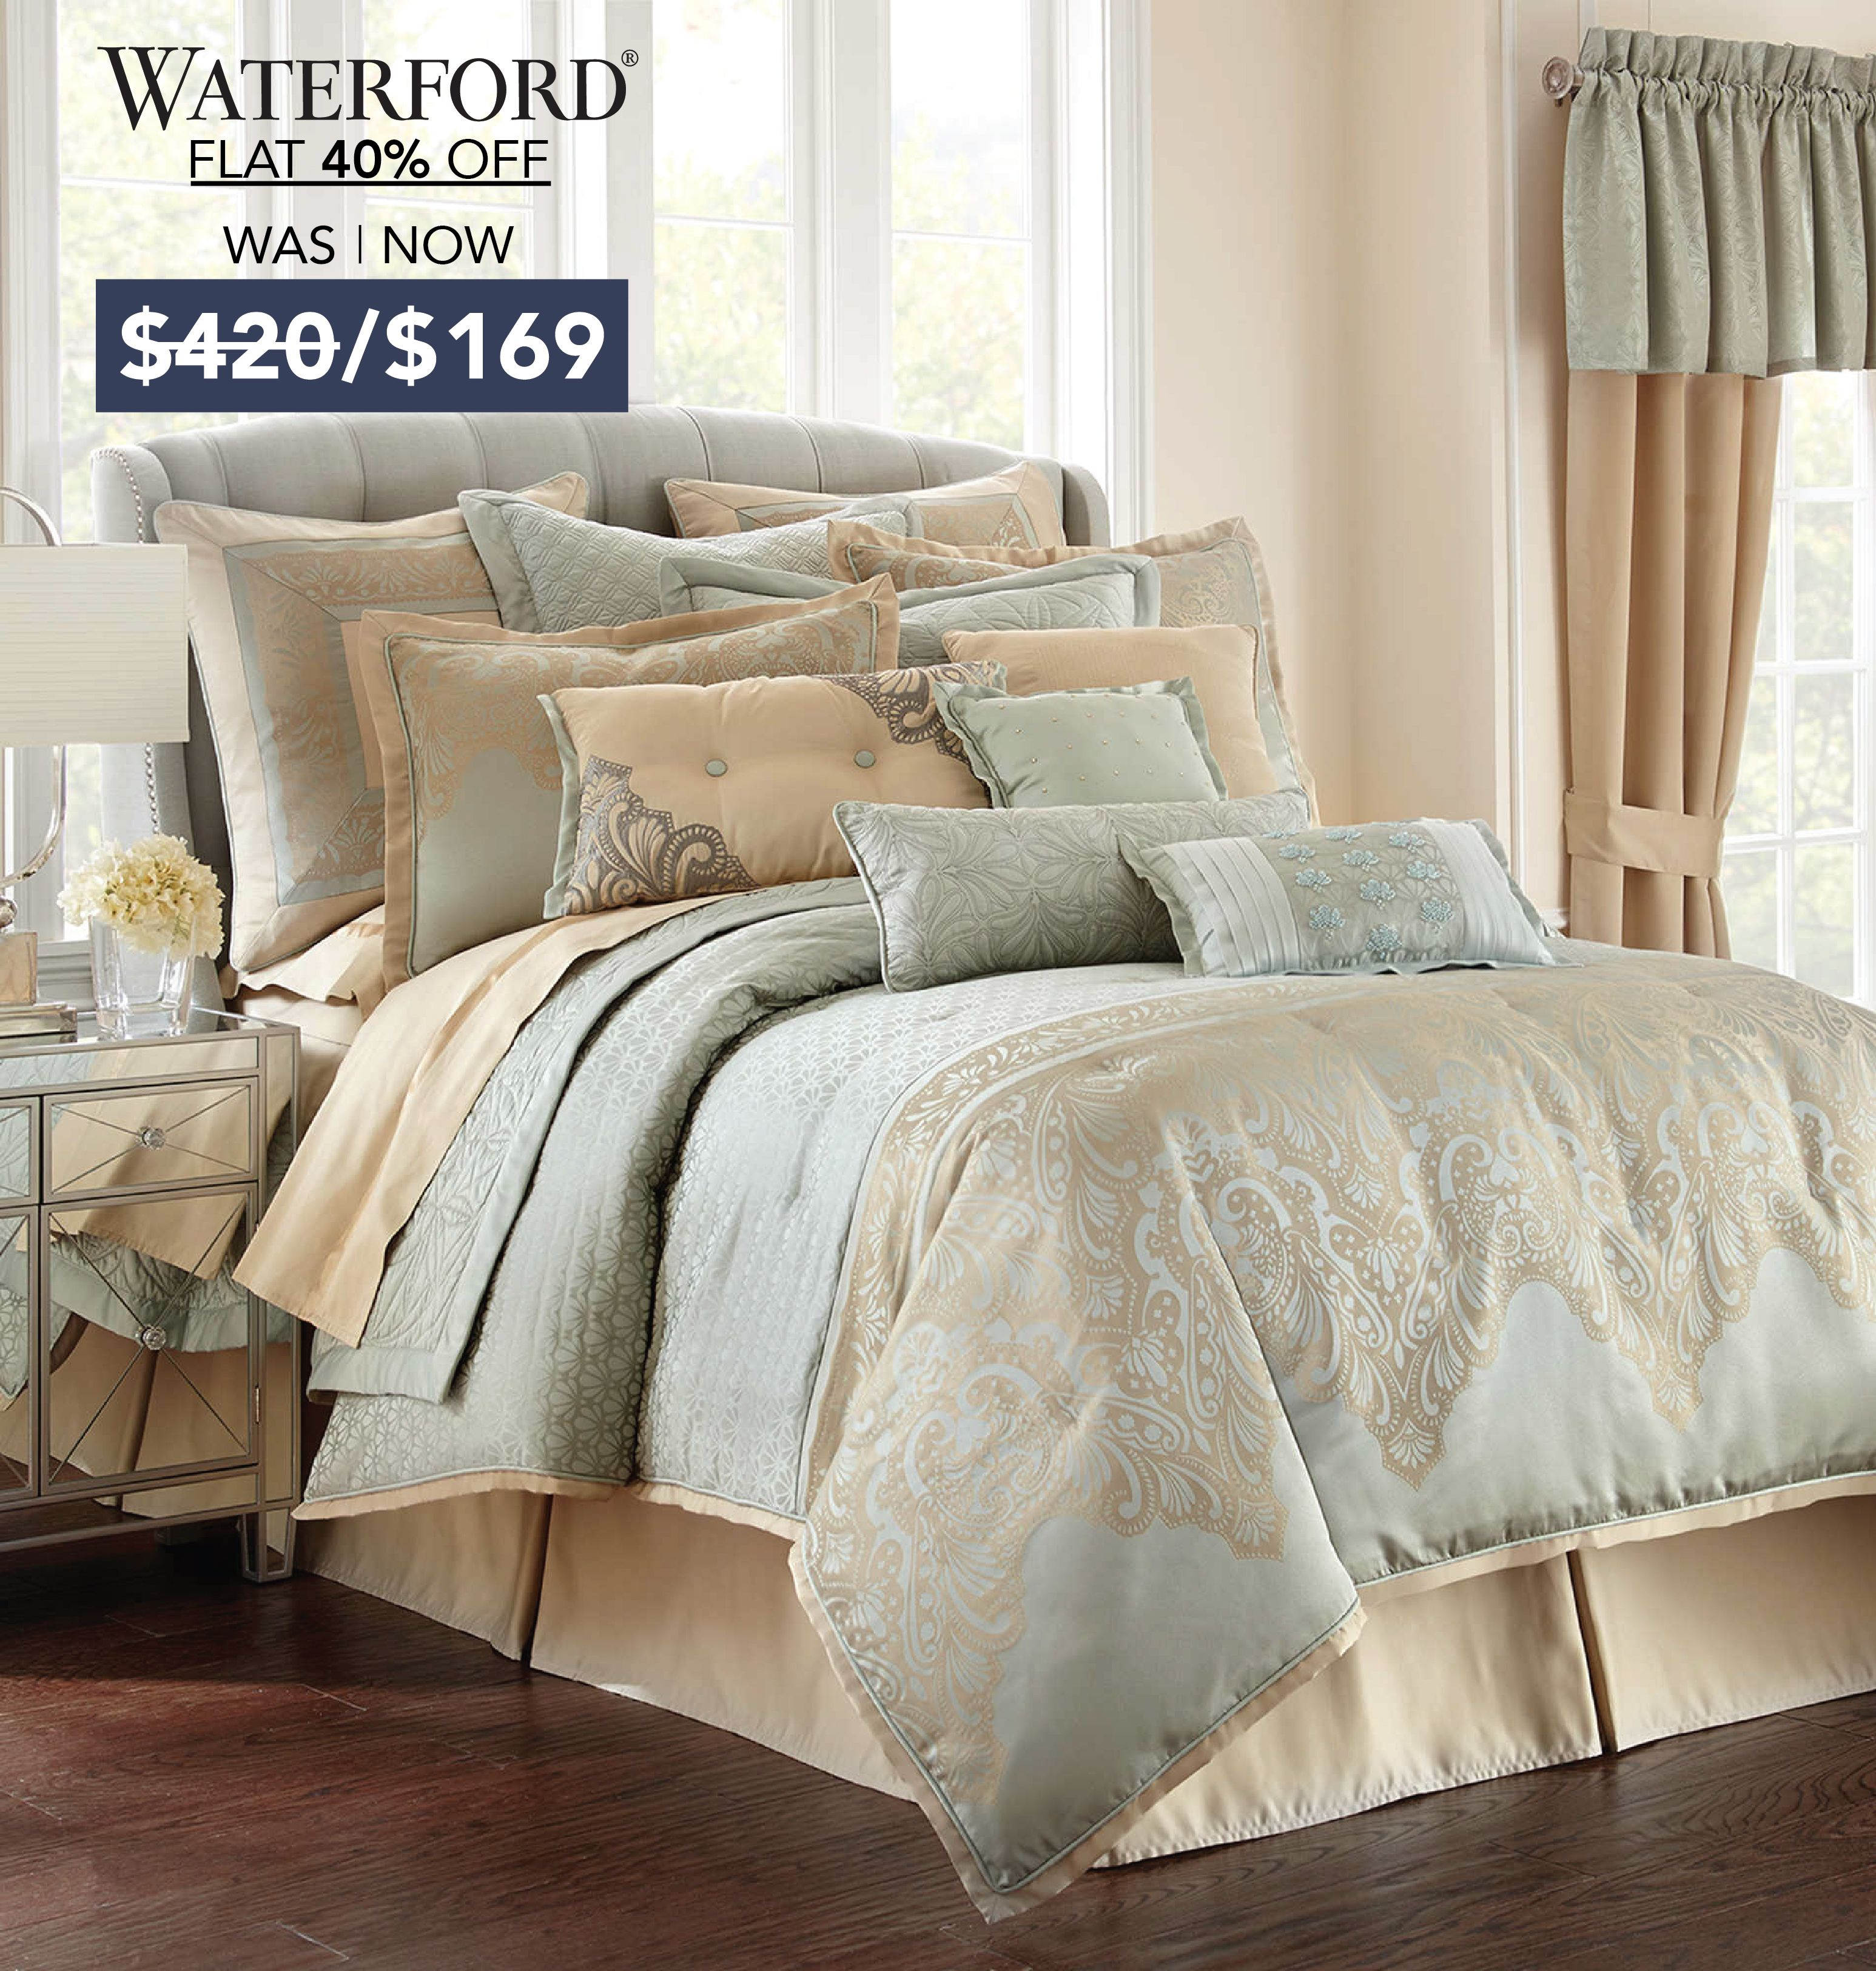 Waterford Luxury Bedding With Price Discount Luxury Bedding